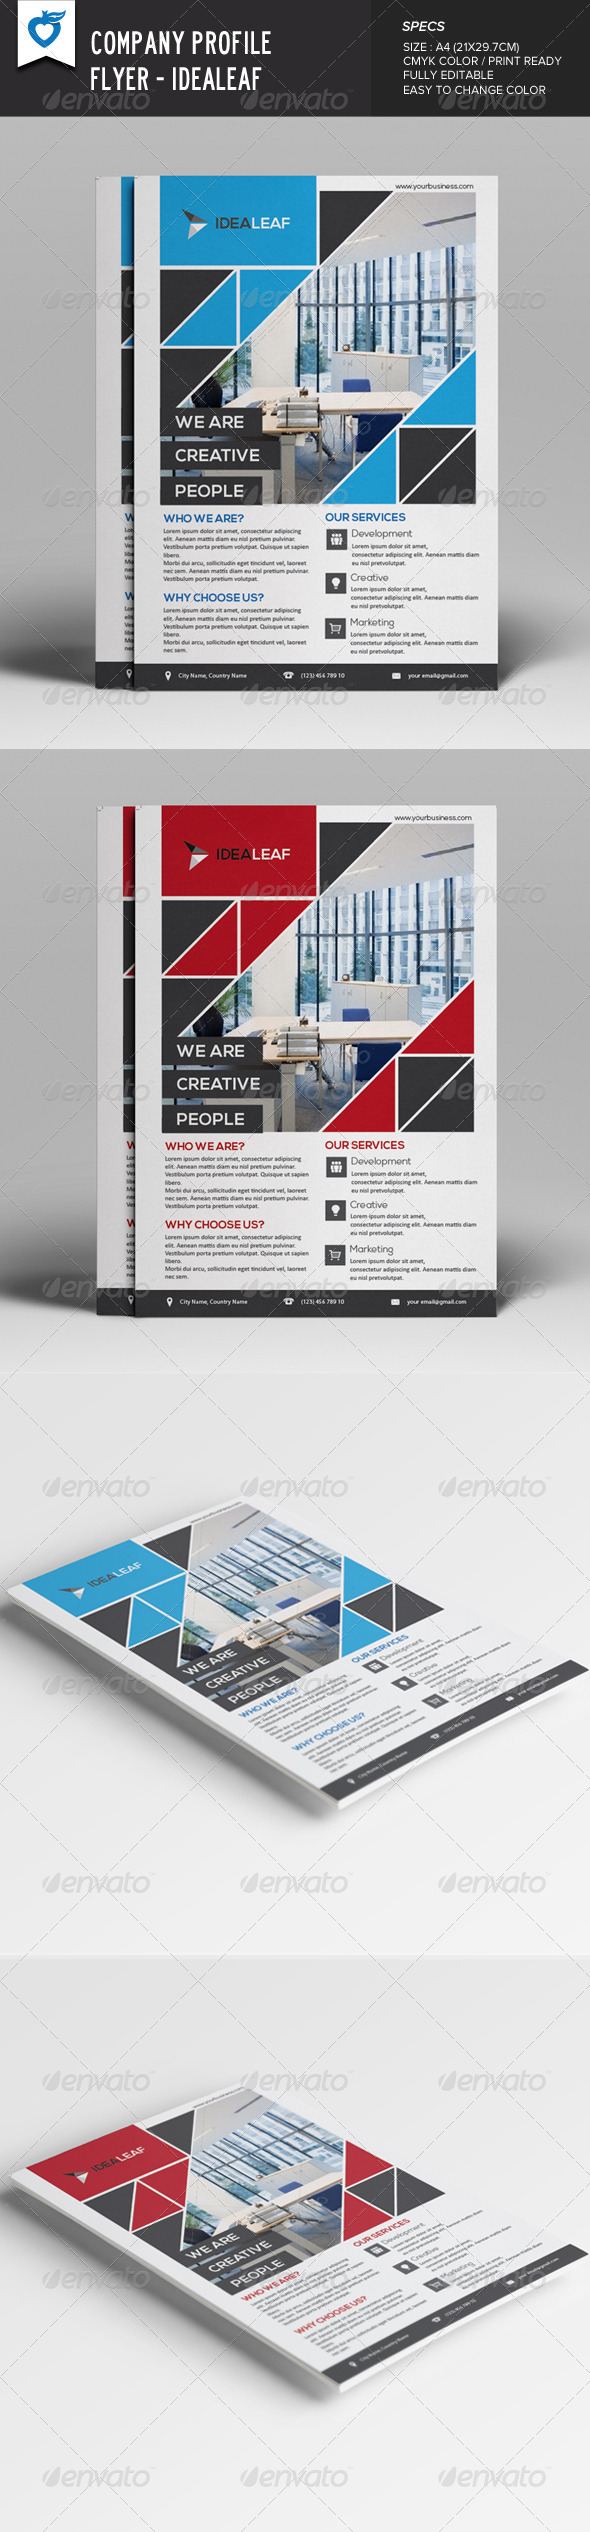 GraphicRiver Company Profile Flyer IdeaLeaf 7989324